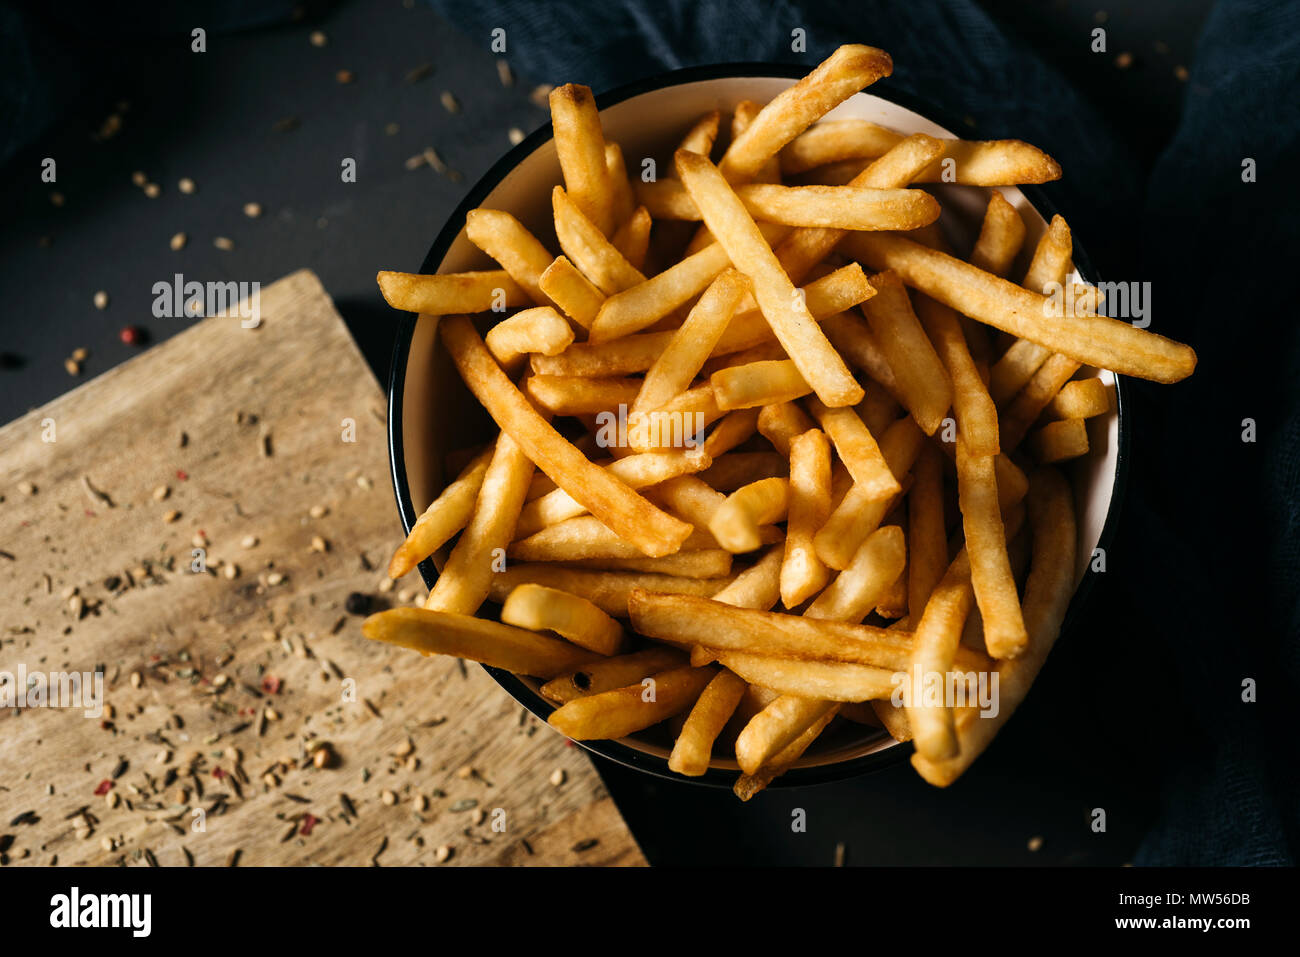 high angle shot of some appetizing french fries served in a white ceramic bowl, placed on a dark gray rustic wooden table - Stock Image